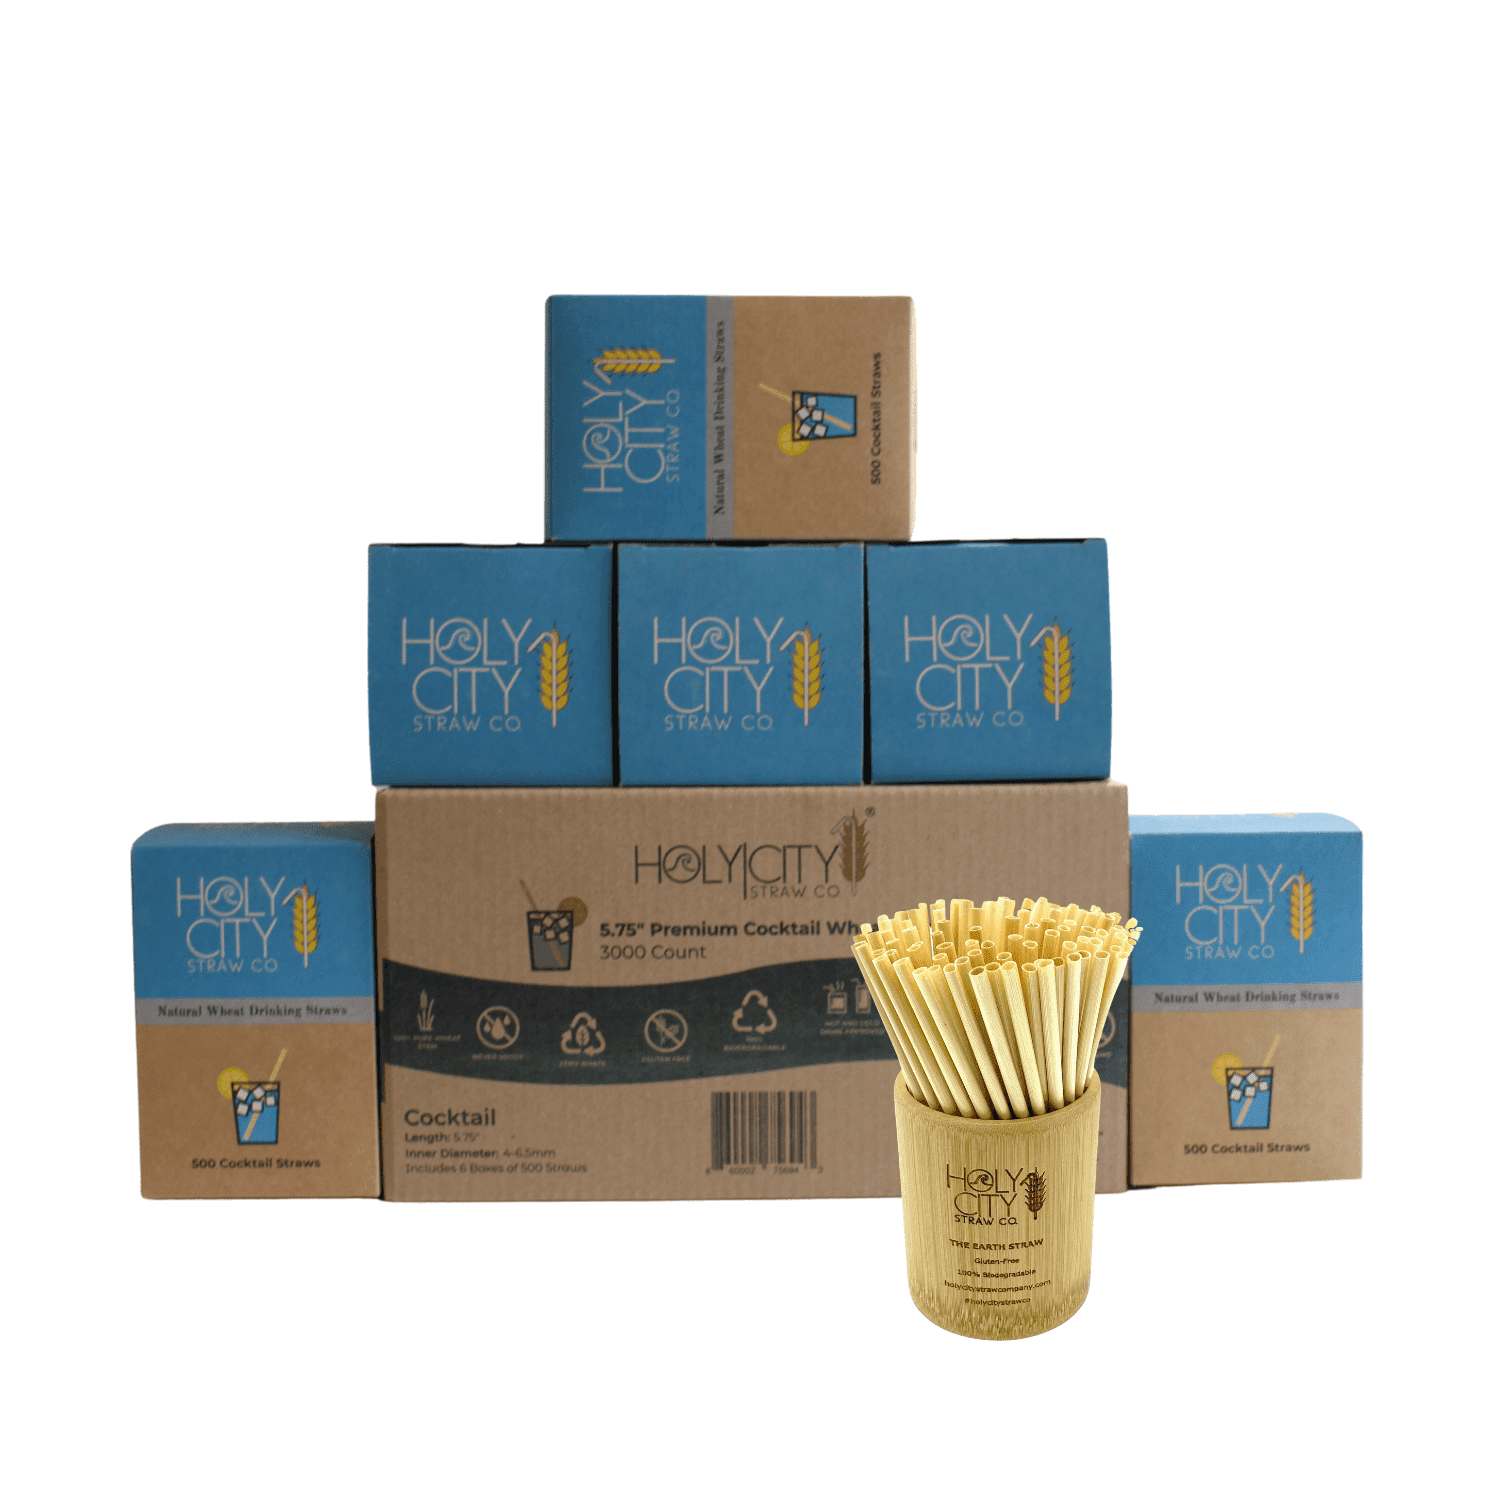 3000 count case containing 6 boxes of 500 ct boxes of Holy City Cocktail wheat Straws